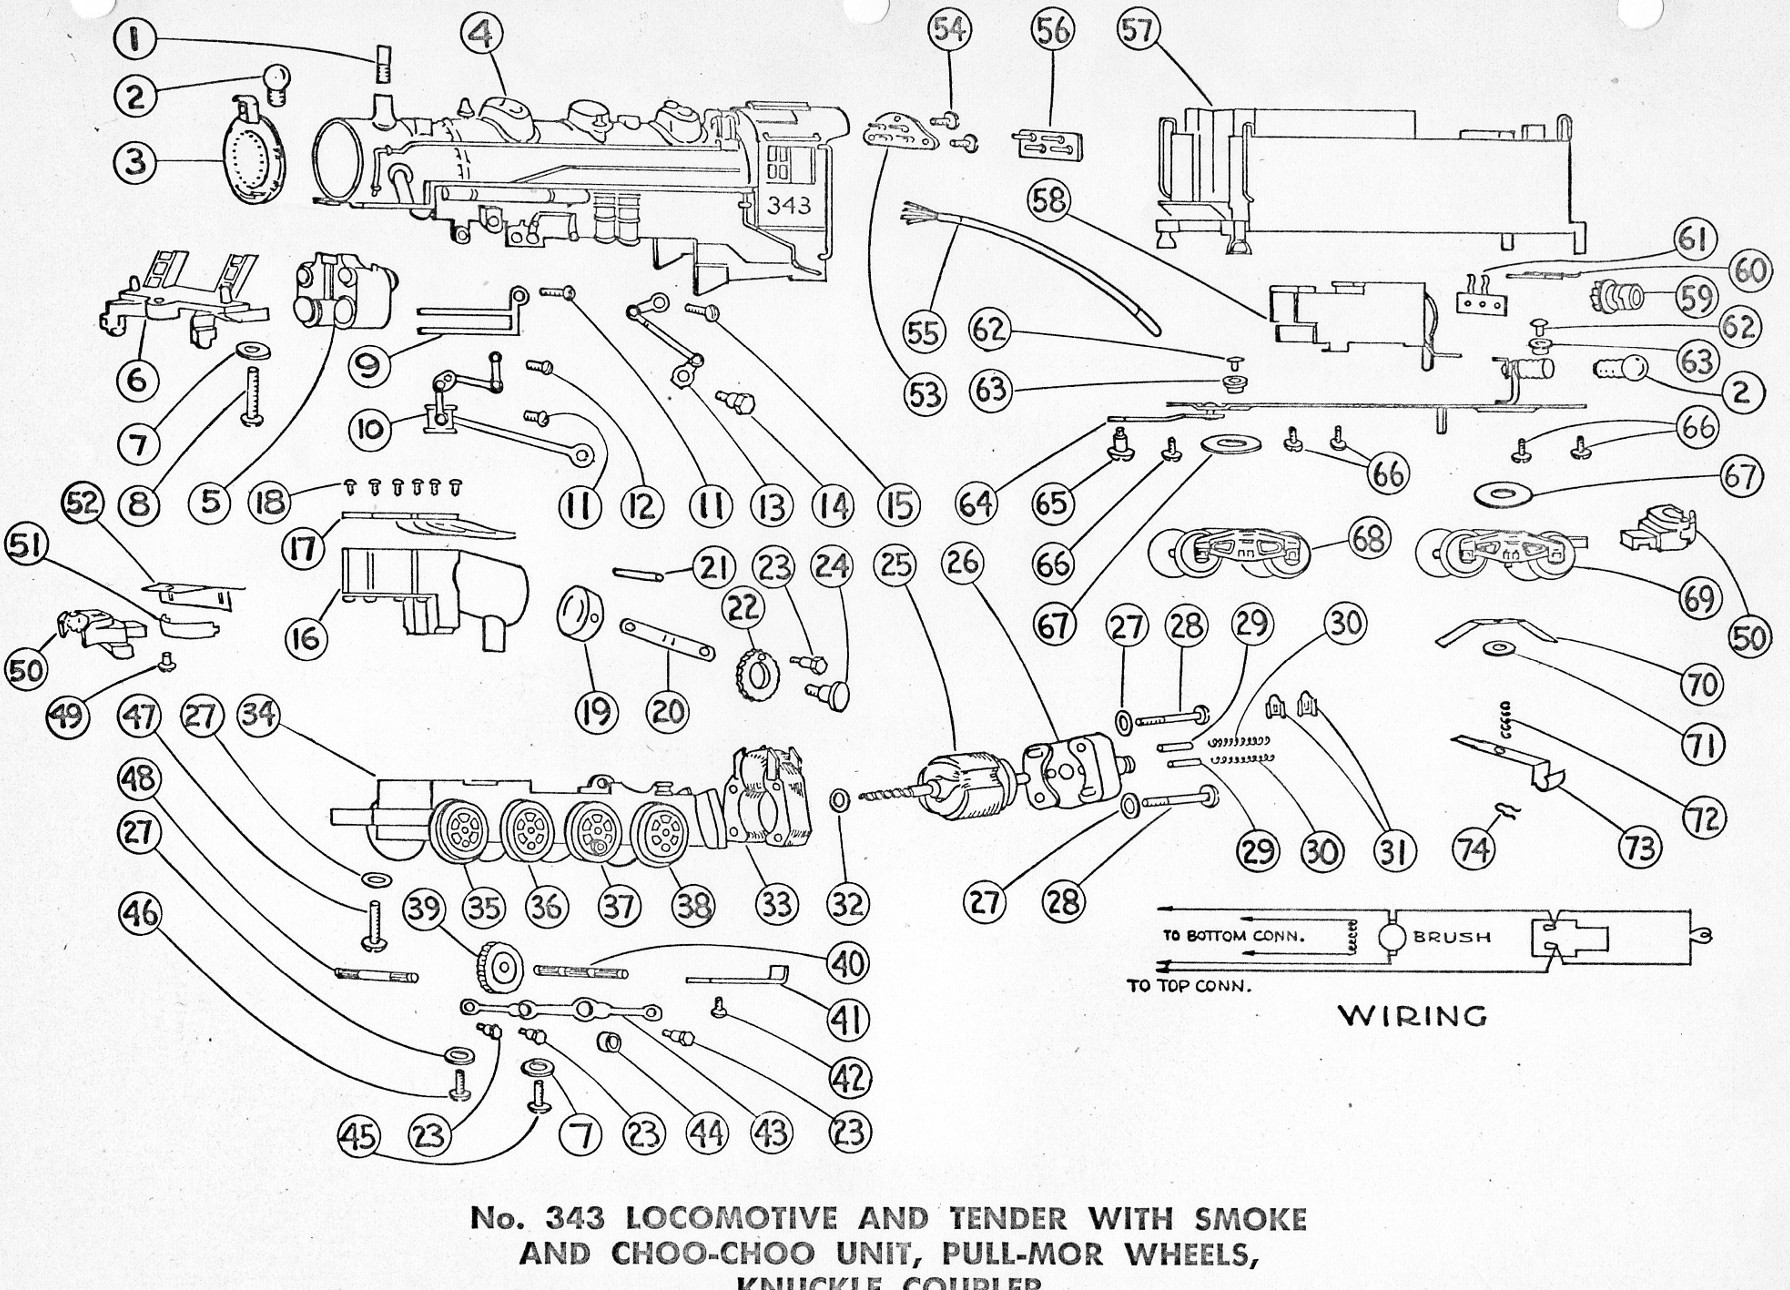 american flyer locomotive 343 parts list  u0026 diagram